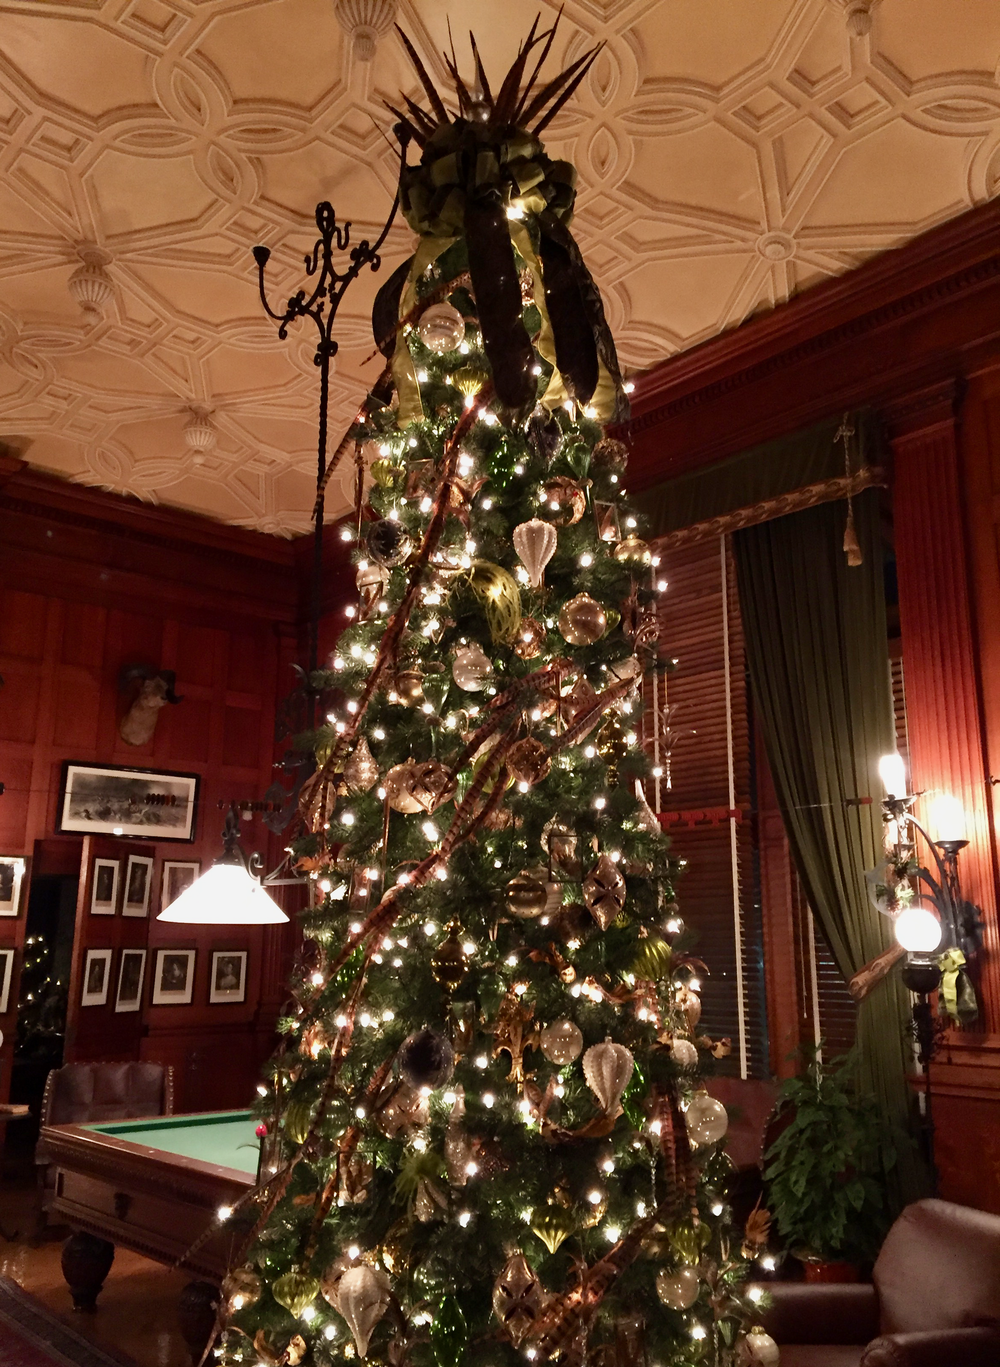 A stunning Christmas tree in the billiards room.